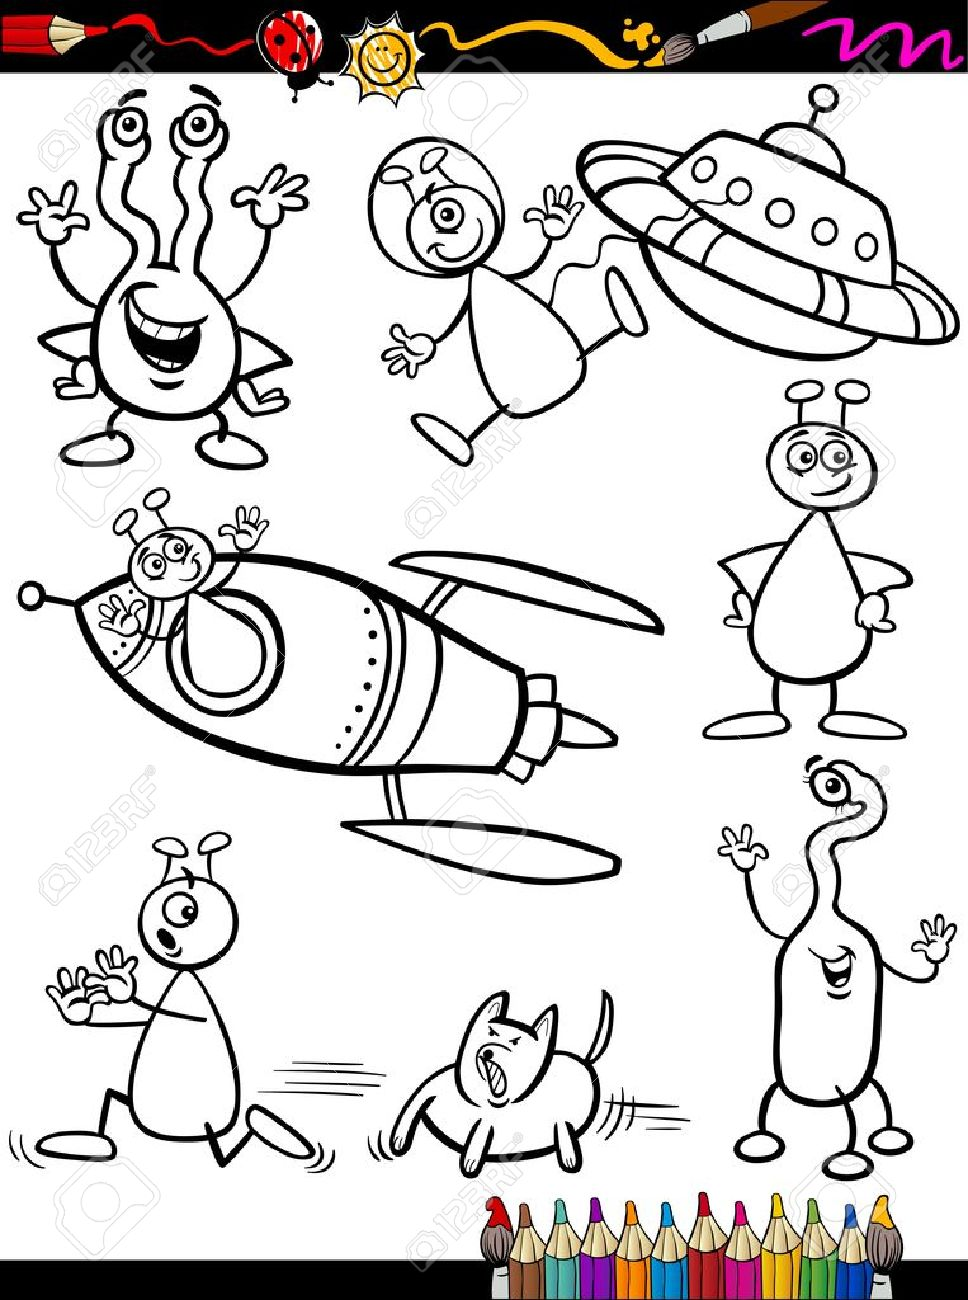 coloring book or page cartoon illustration set of black and white